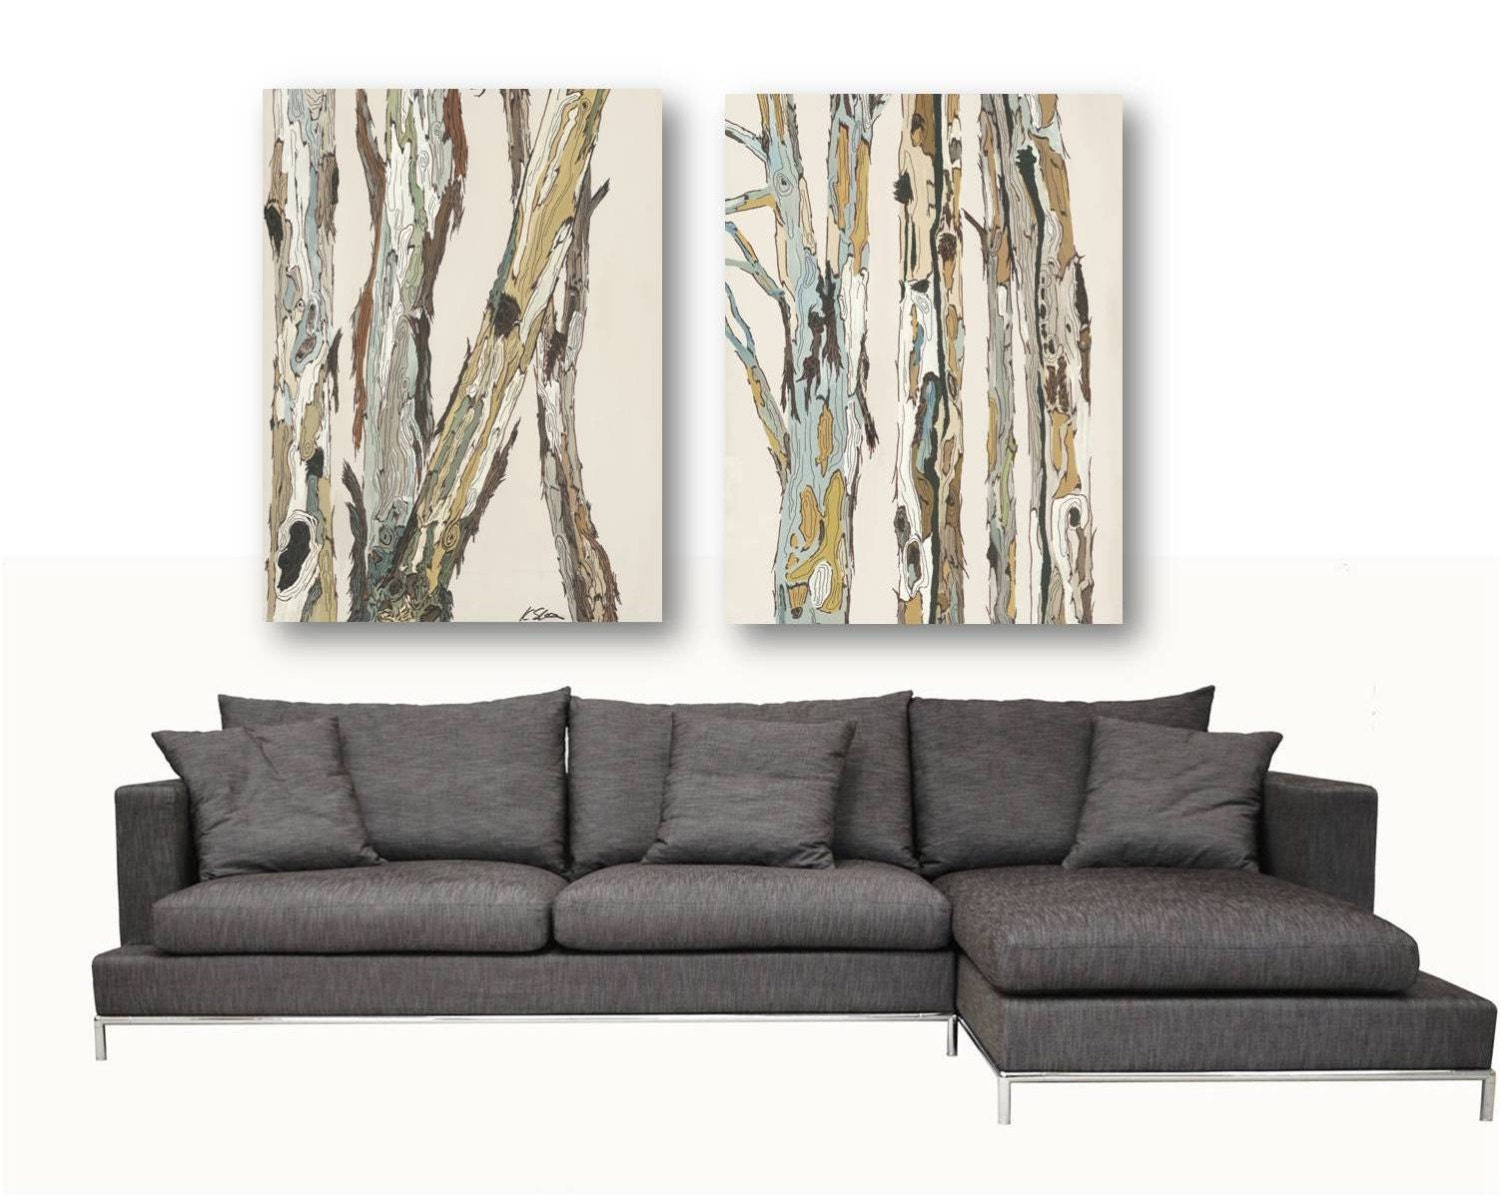 Large H Wall Decor : Extra large wall art diptych set canvas oversized by